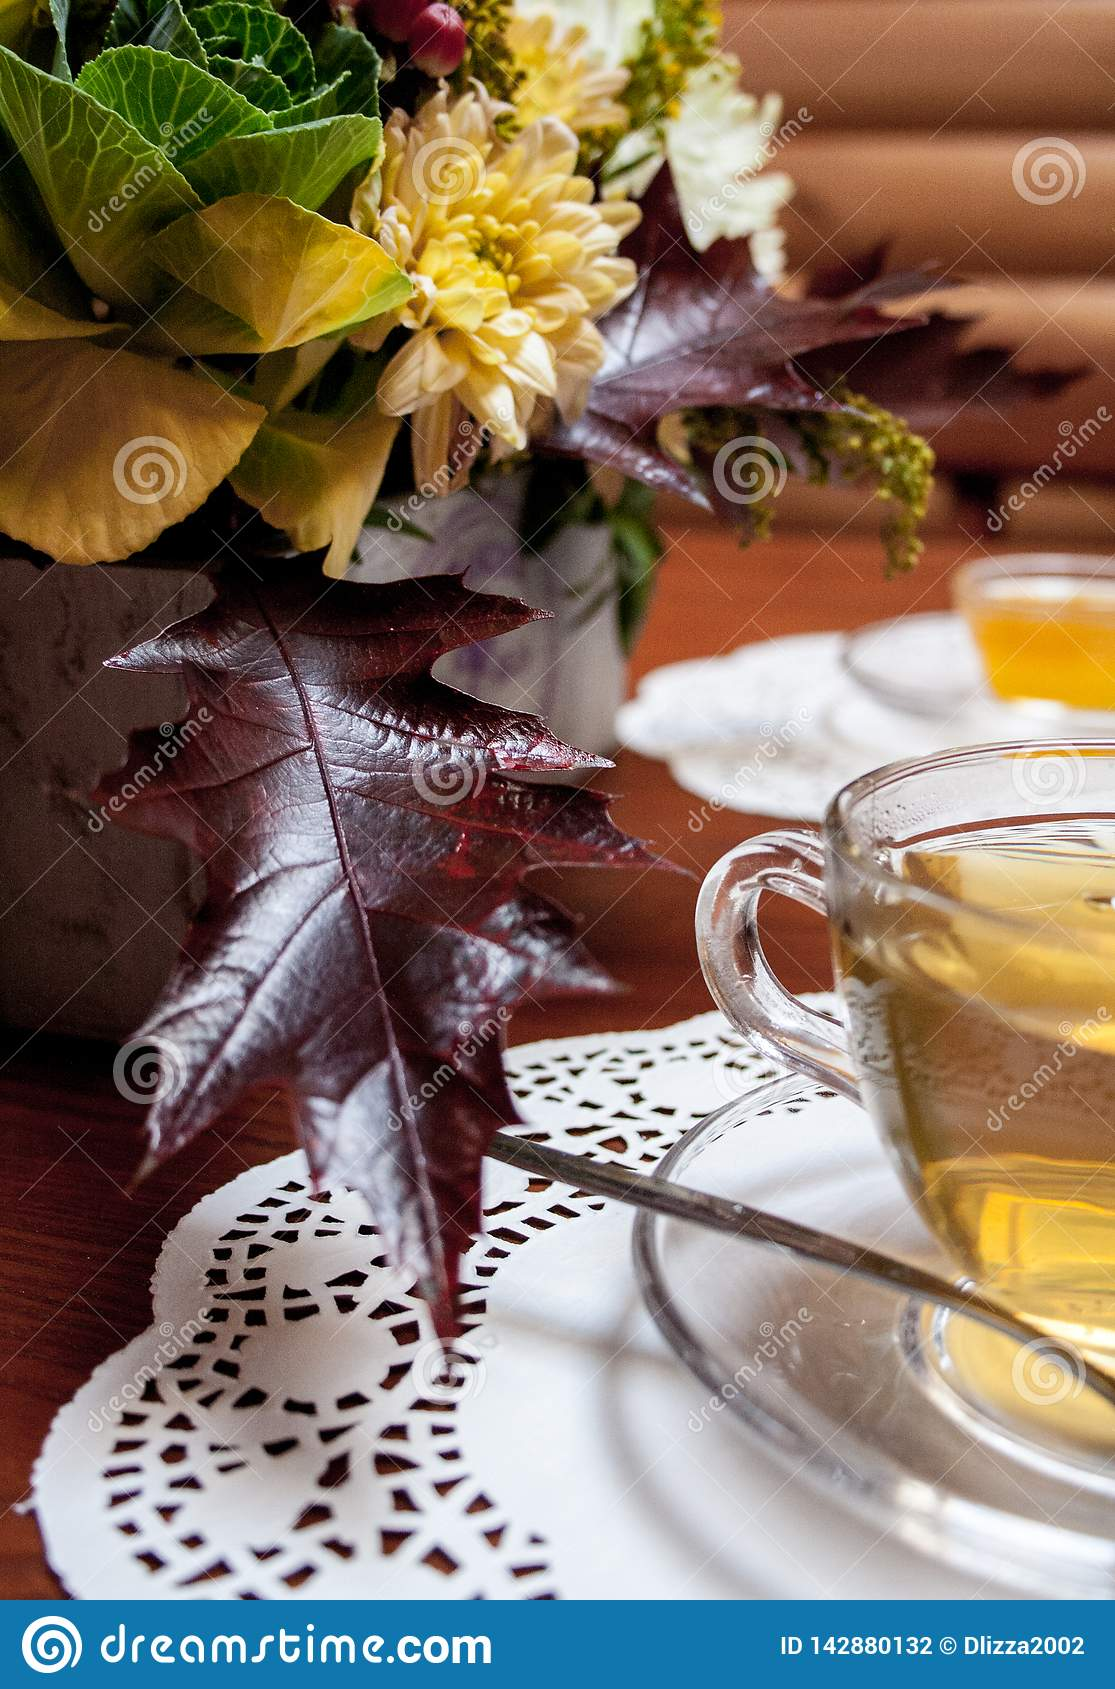 Сup of tea and flowers on table